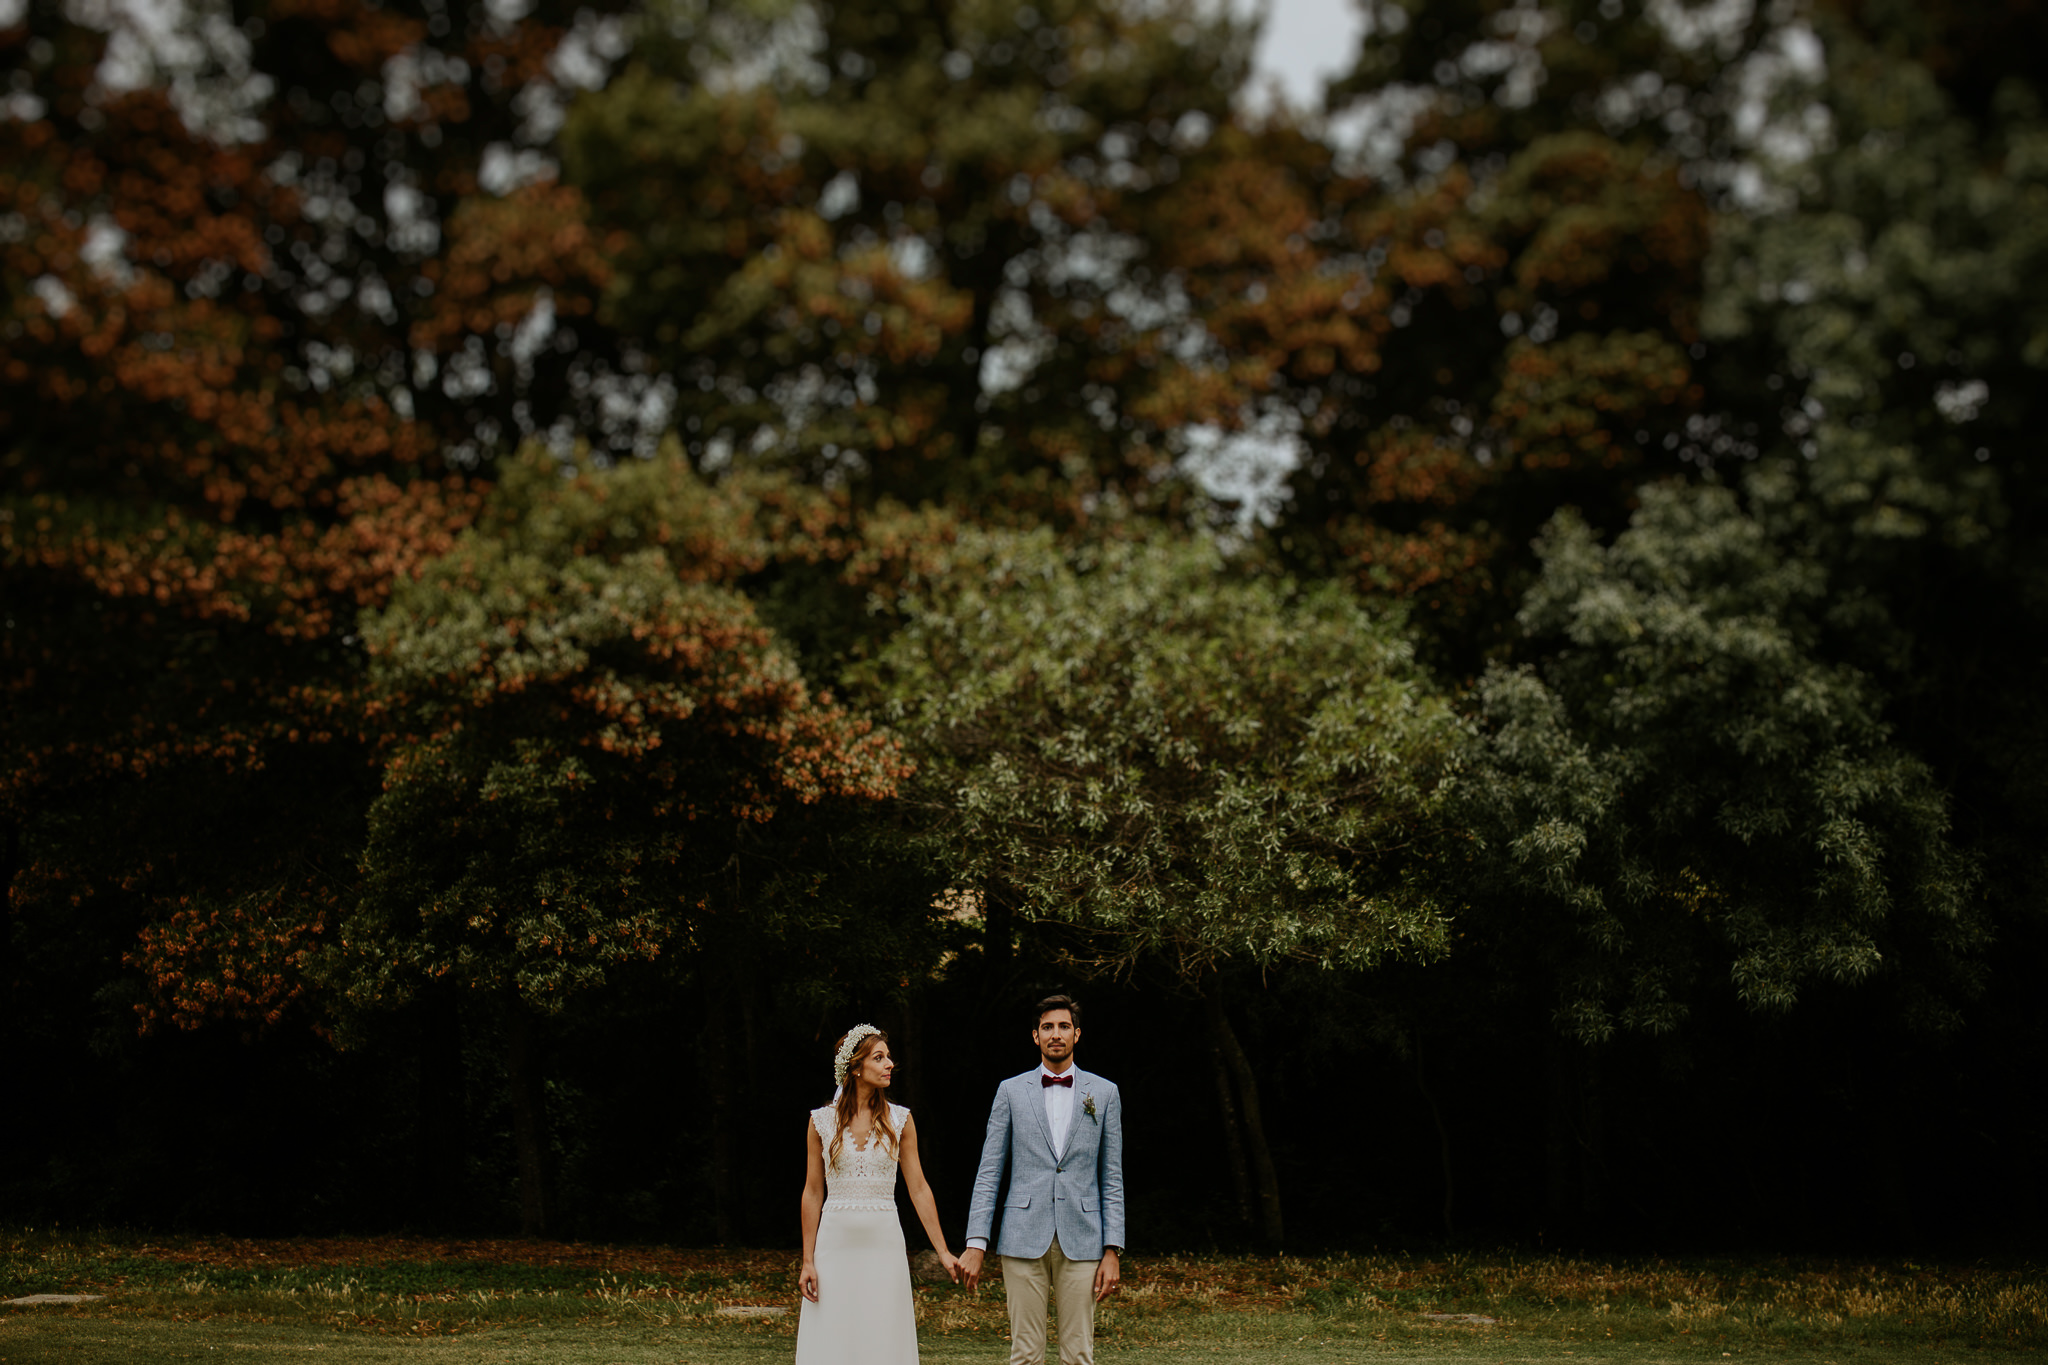 Strait portrait of bride and groom surrounded by Trees